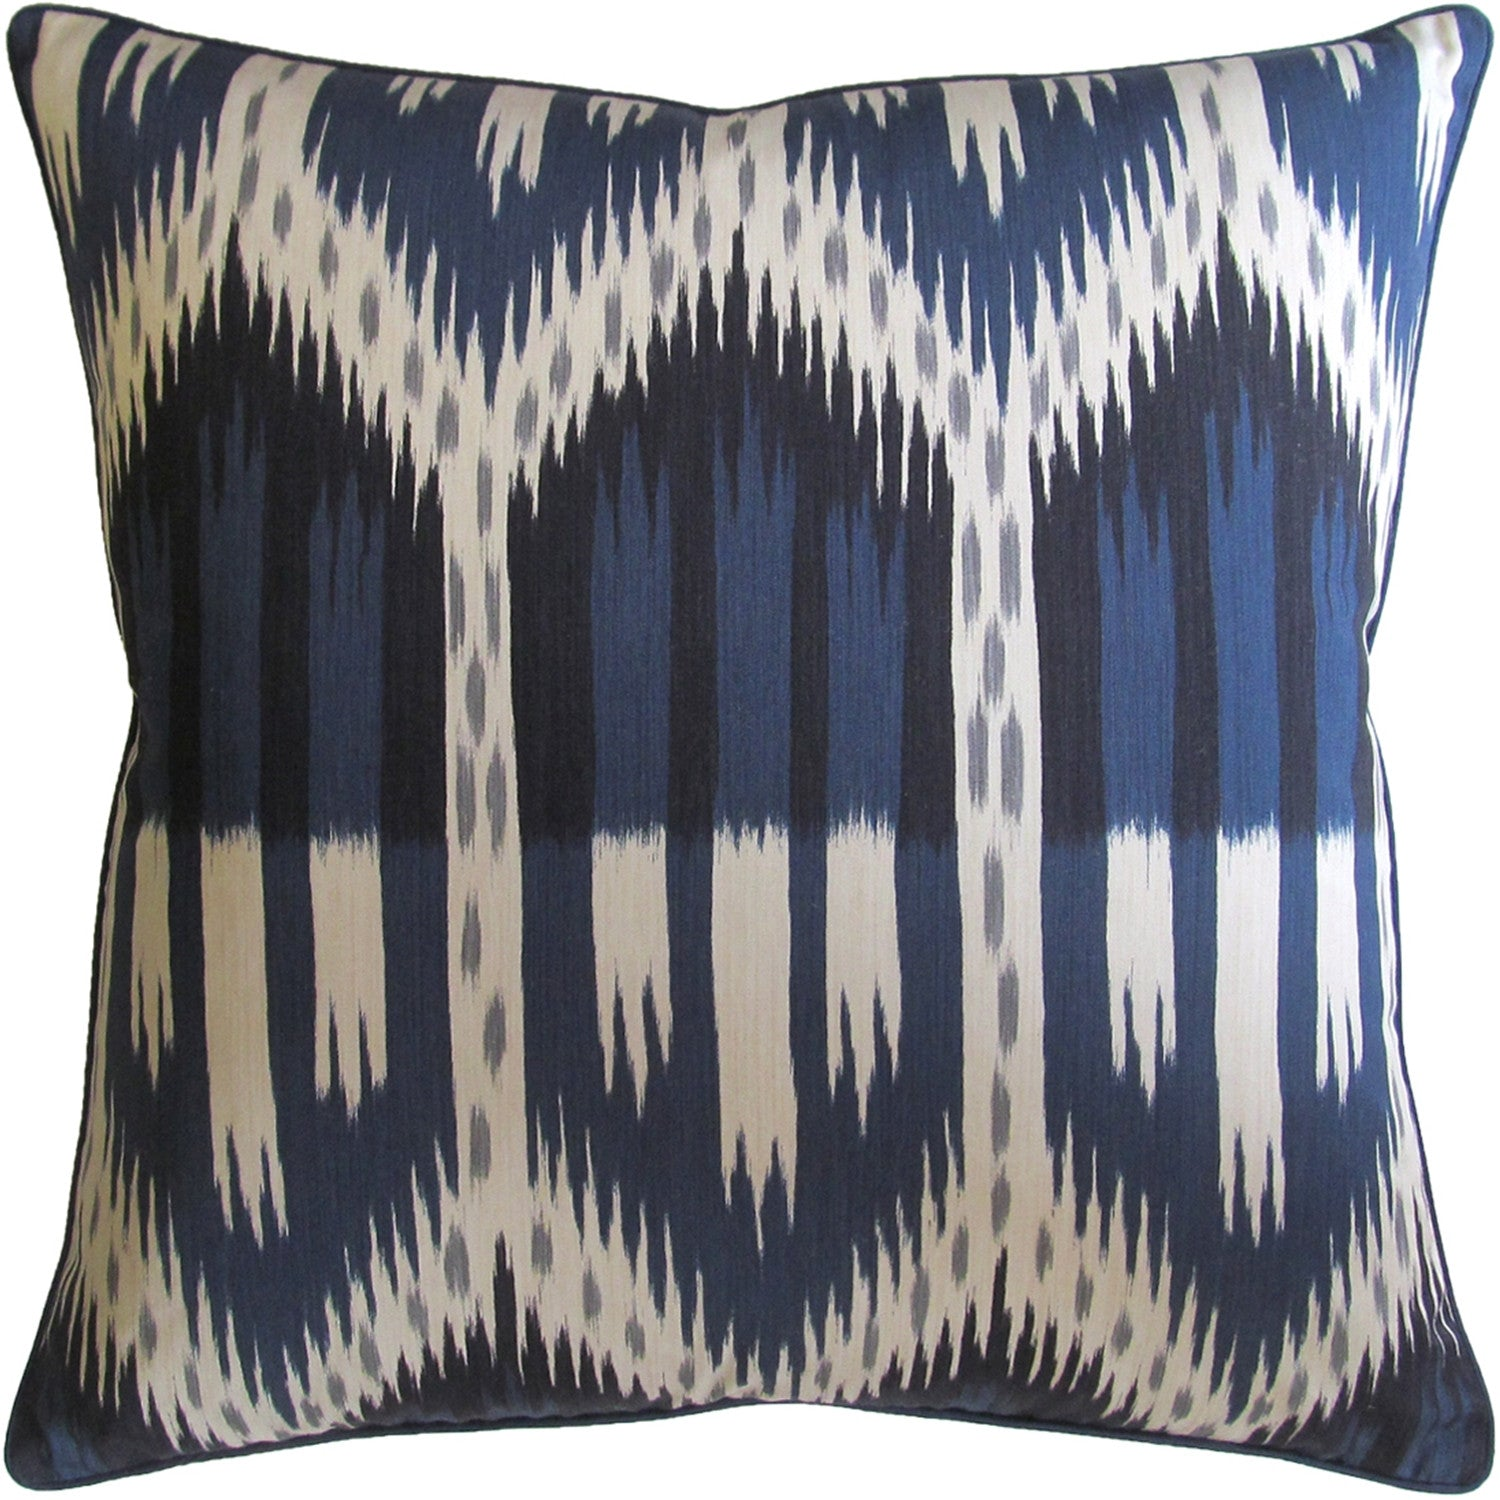 Ryan Studio Bukhara Ikat Pillow in Indigo